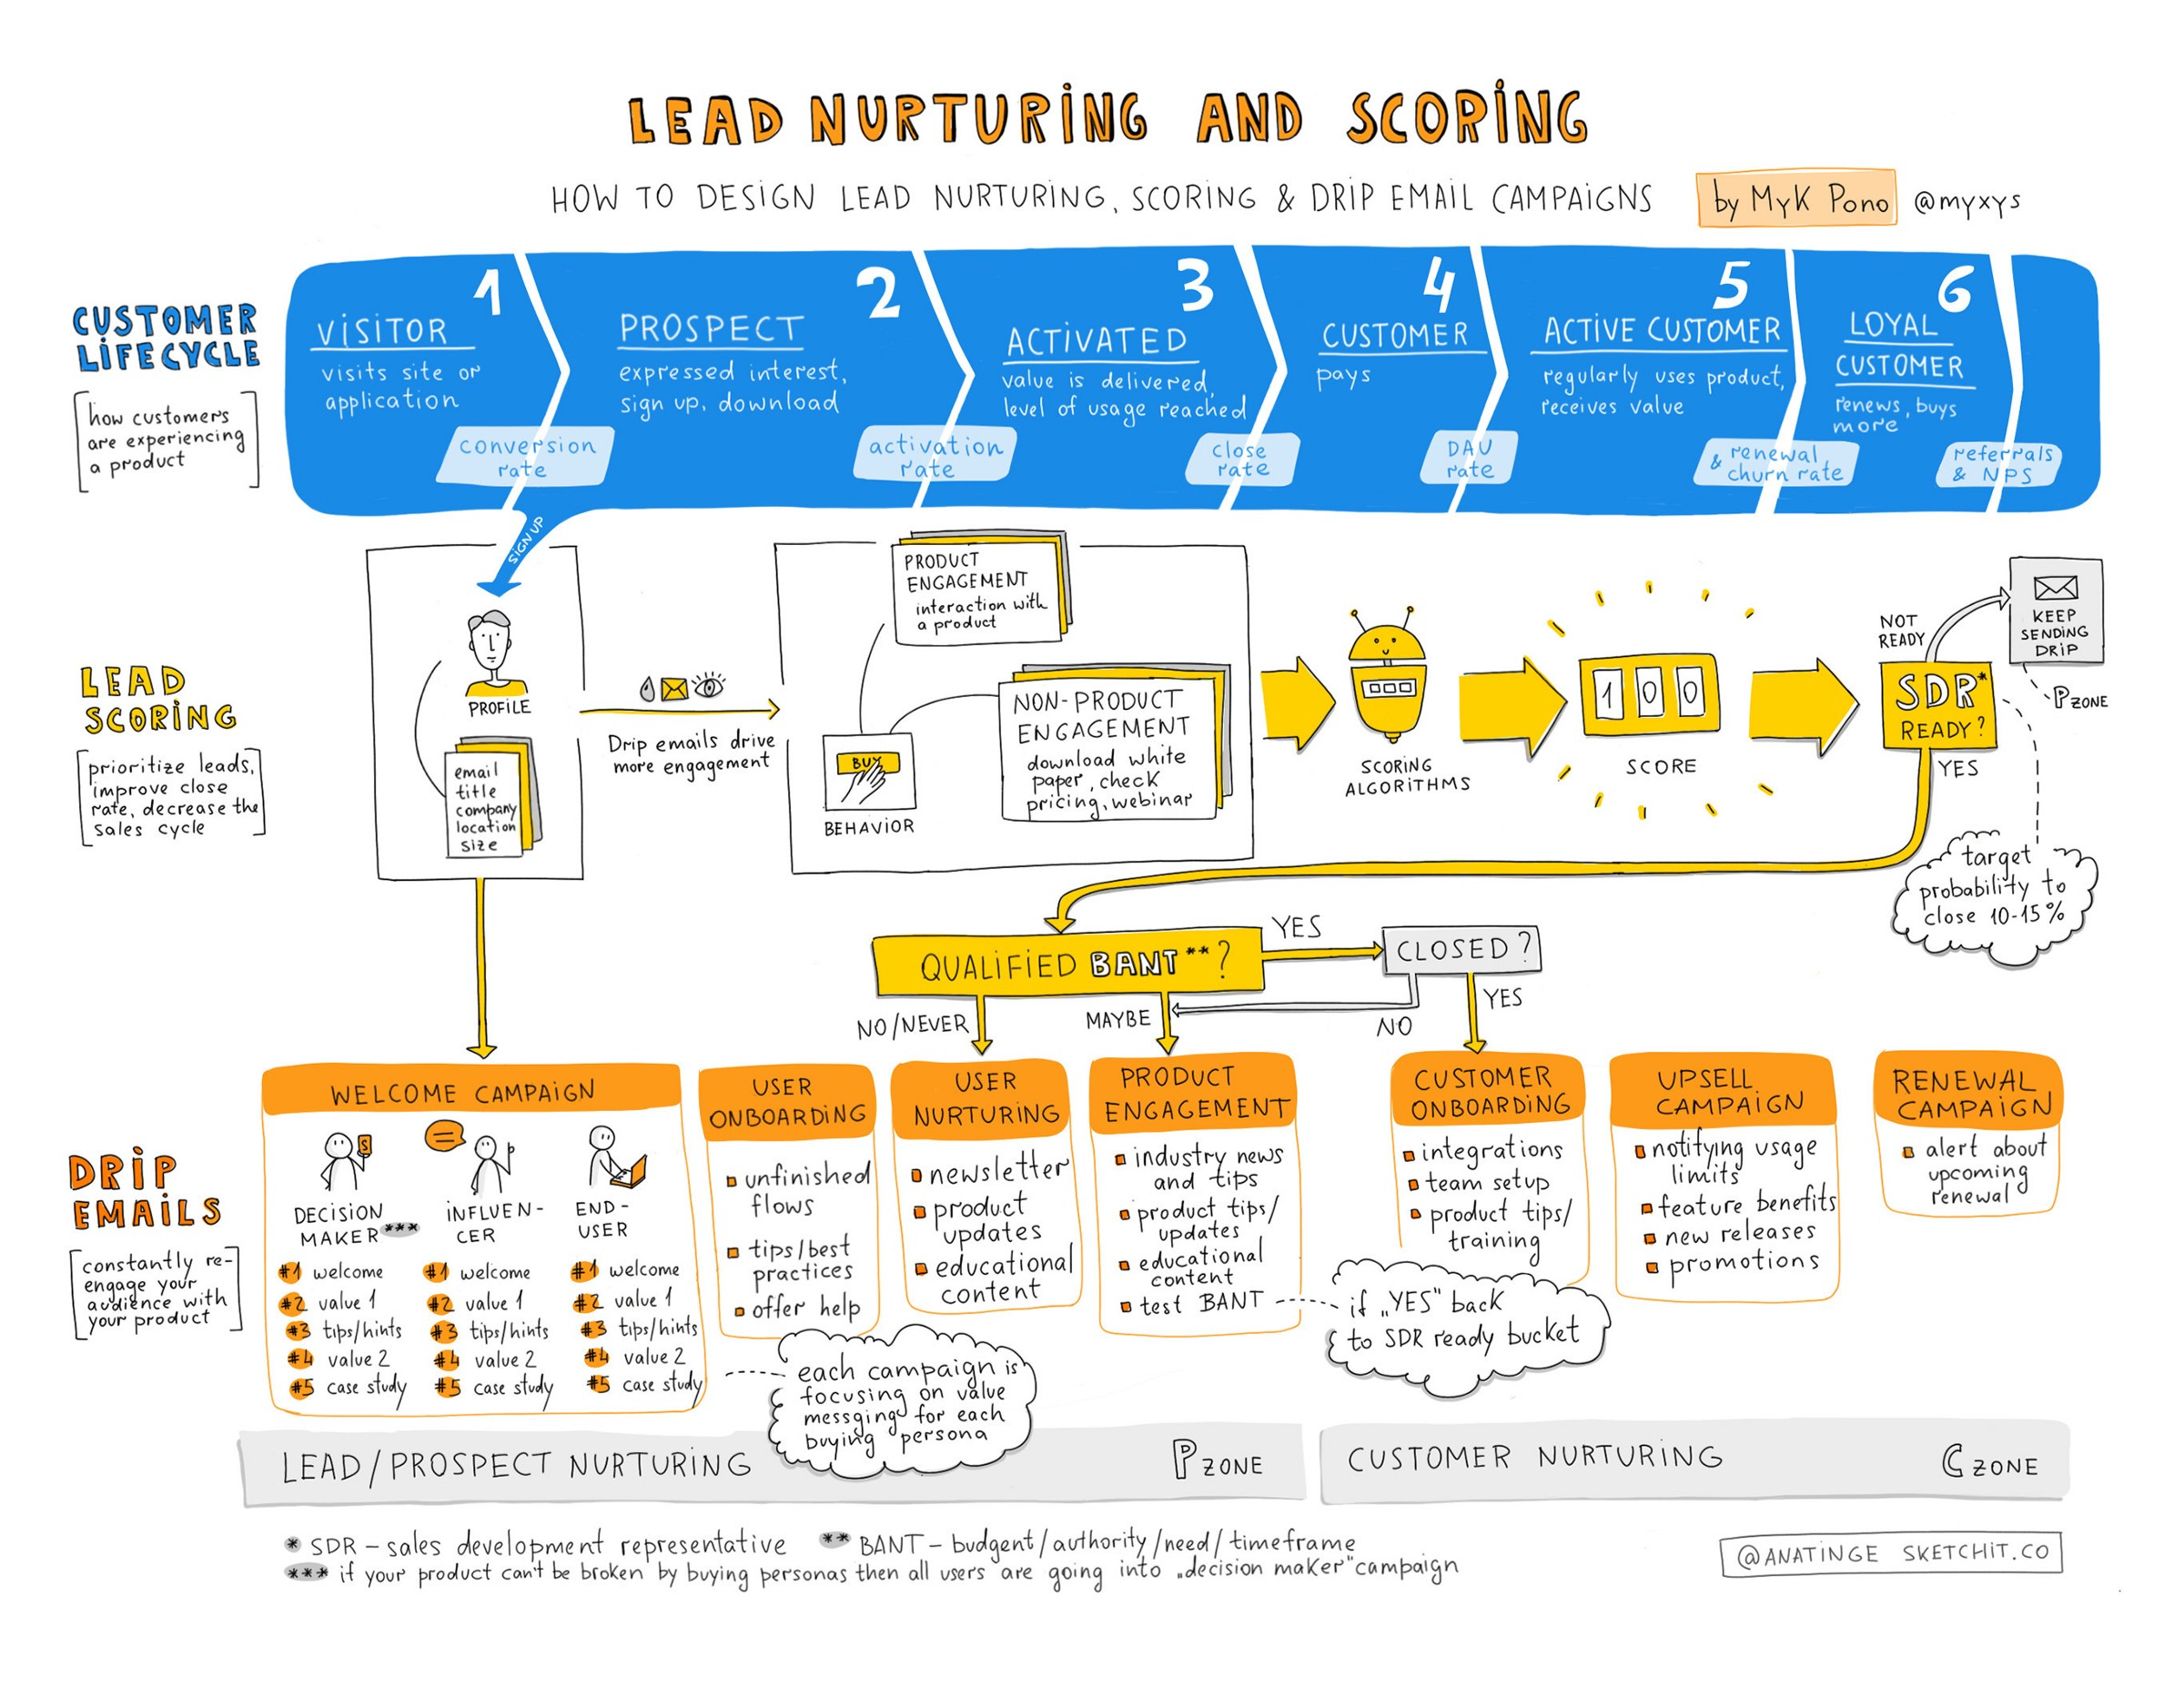 how to design lead nurturing lead scoring and drip email. Black Bedroom Furniture Sets. Home Design Ideas